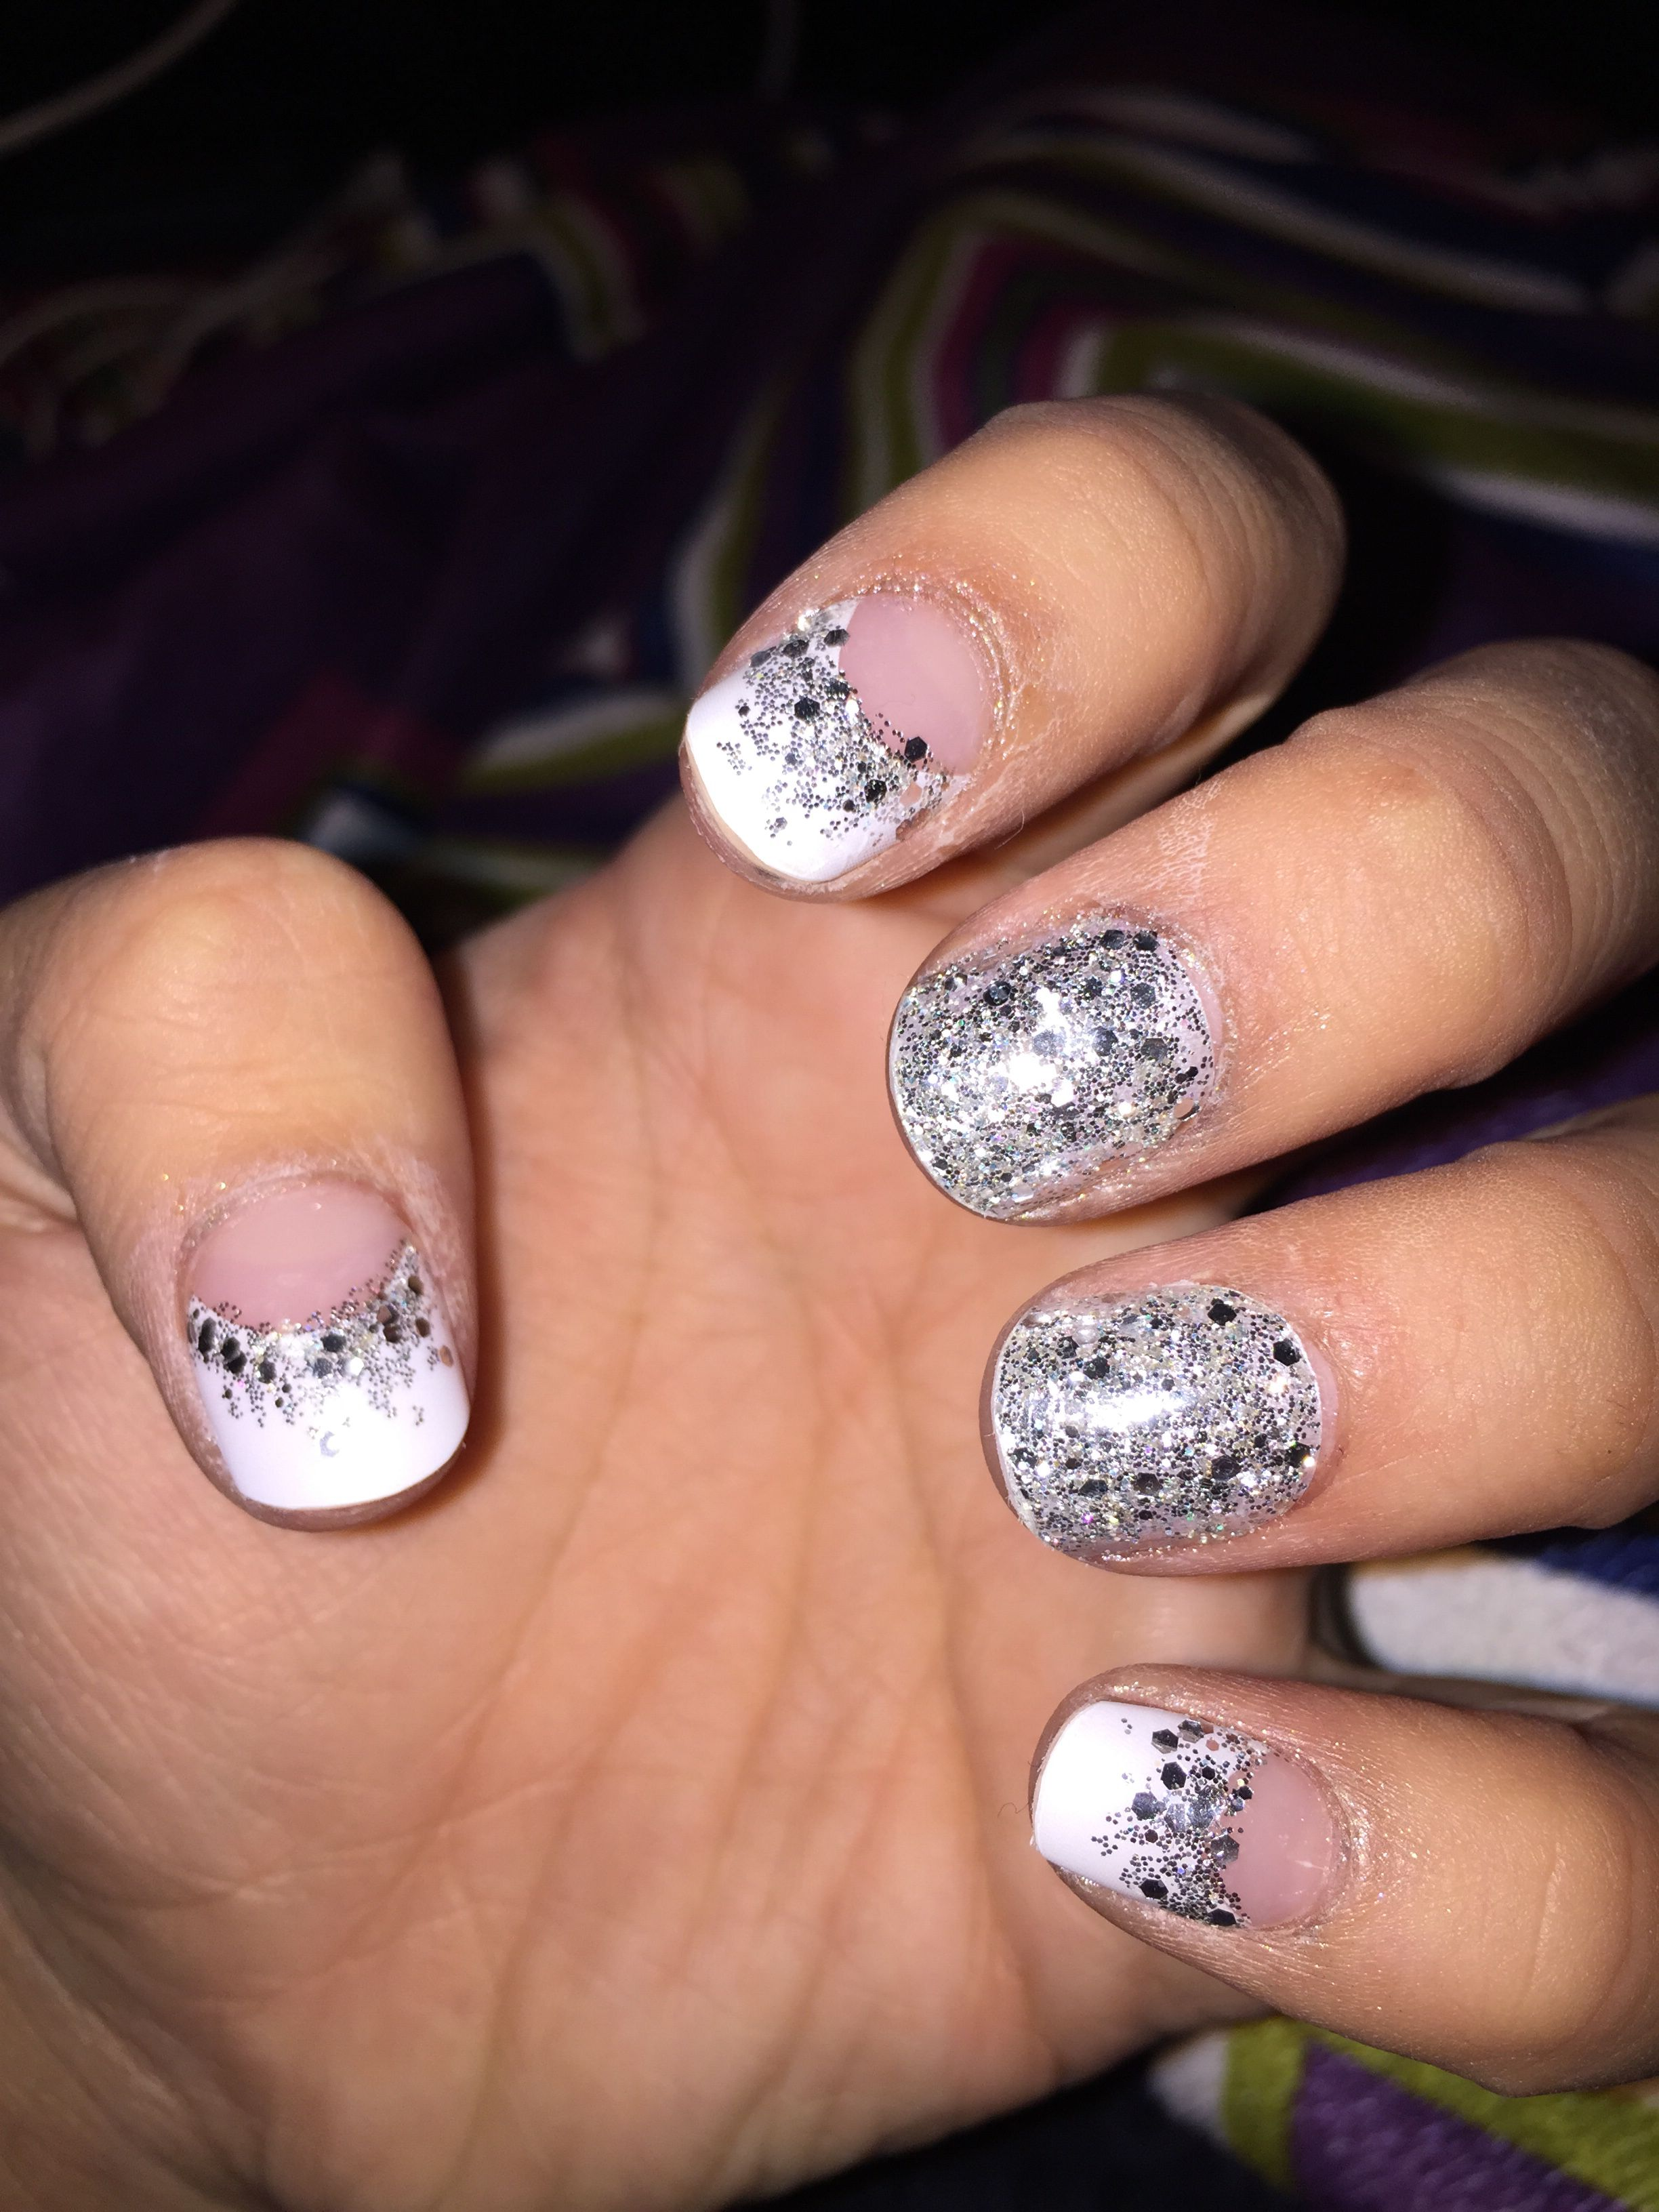 Just some press ons Nails inspiration, Nails, Beauty